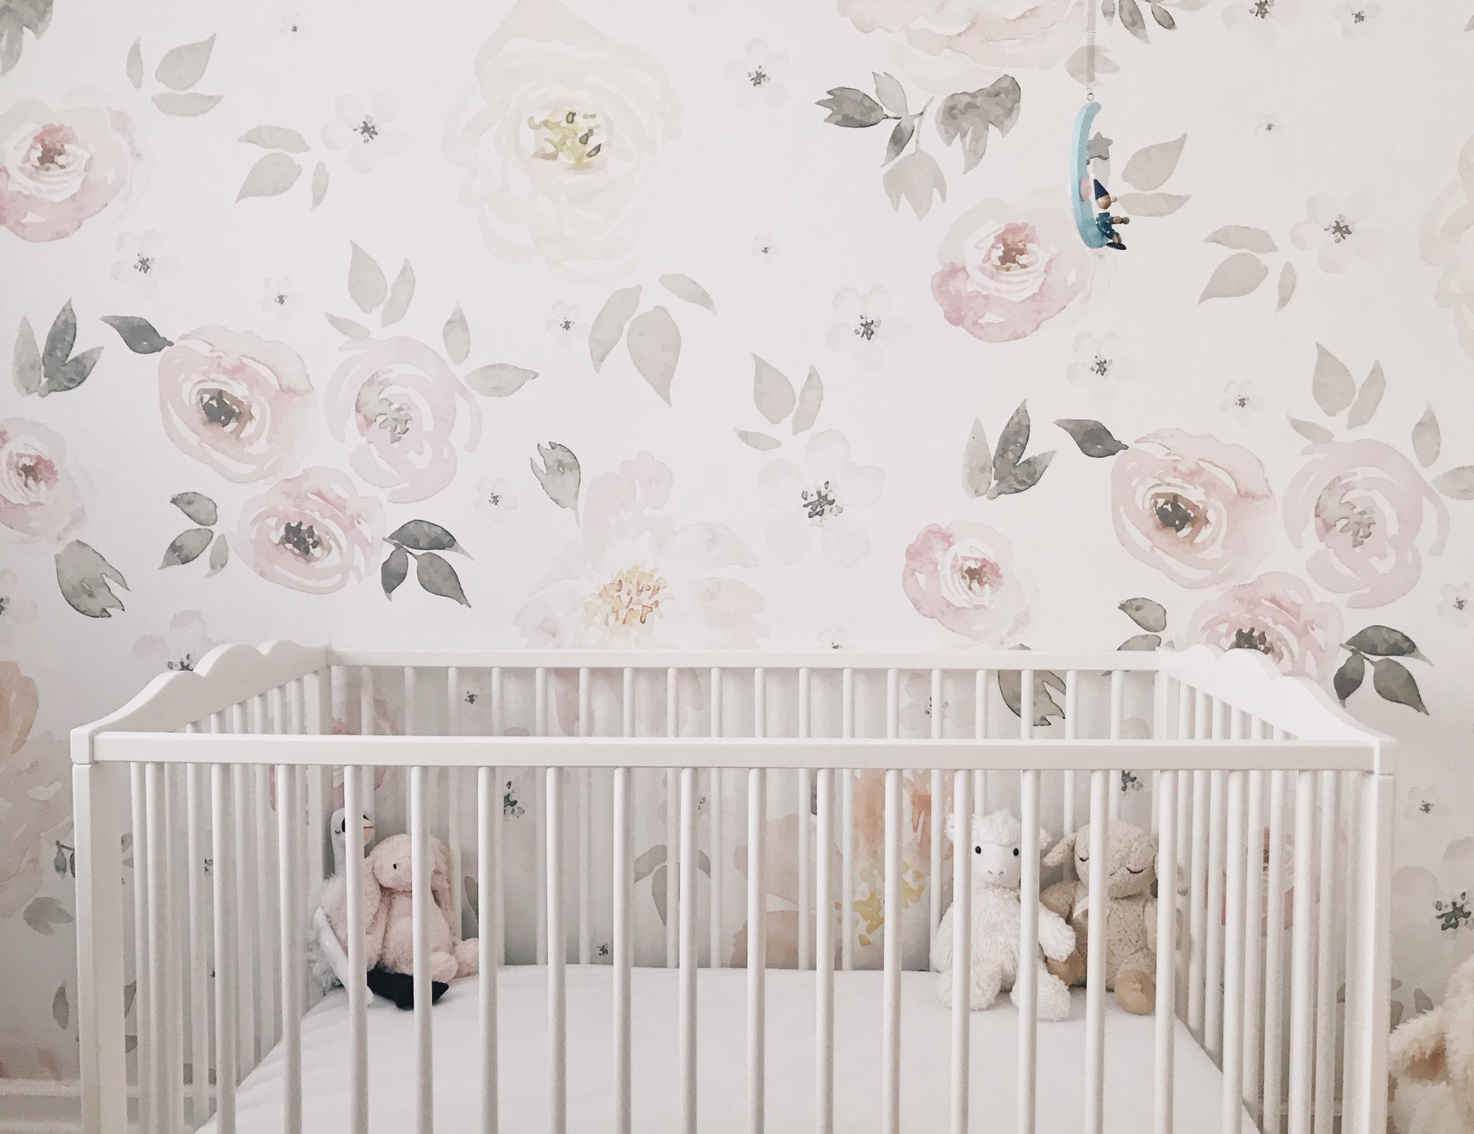 Blomma Designs - Little Girl's Nursery - Alaska Wedding and Event Design